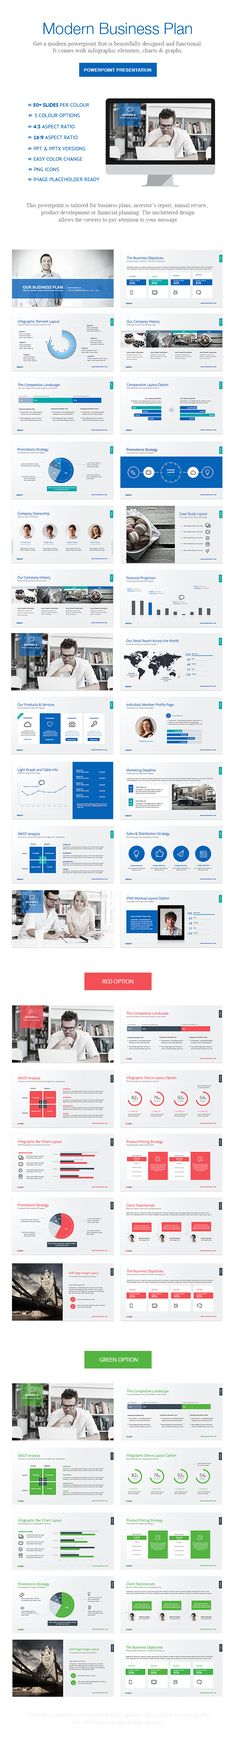 Business Plan Powerpoint Template | Business Planning And Flat Design